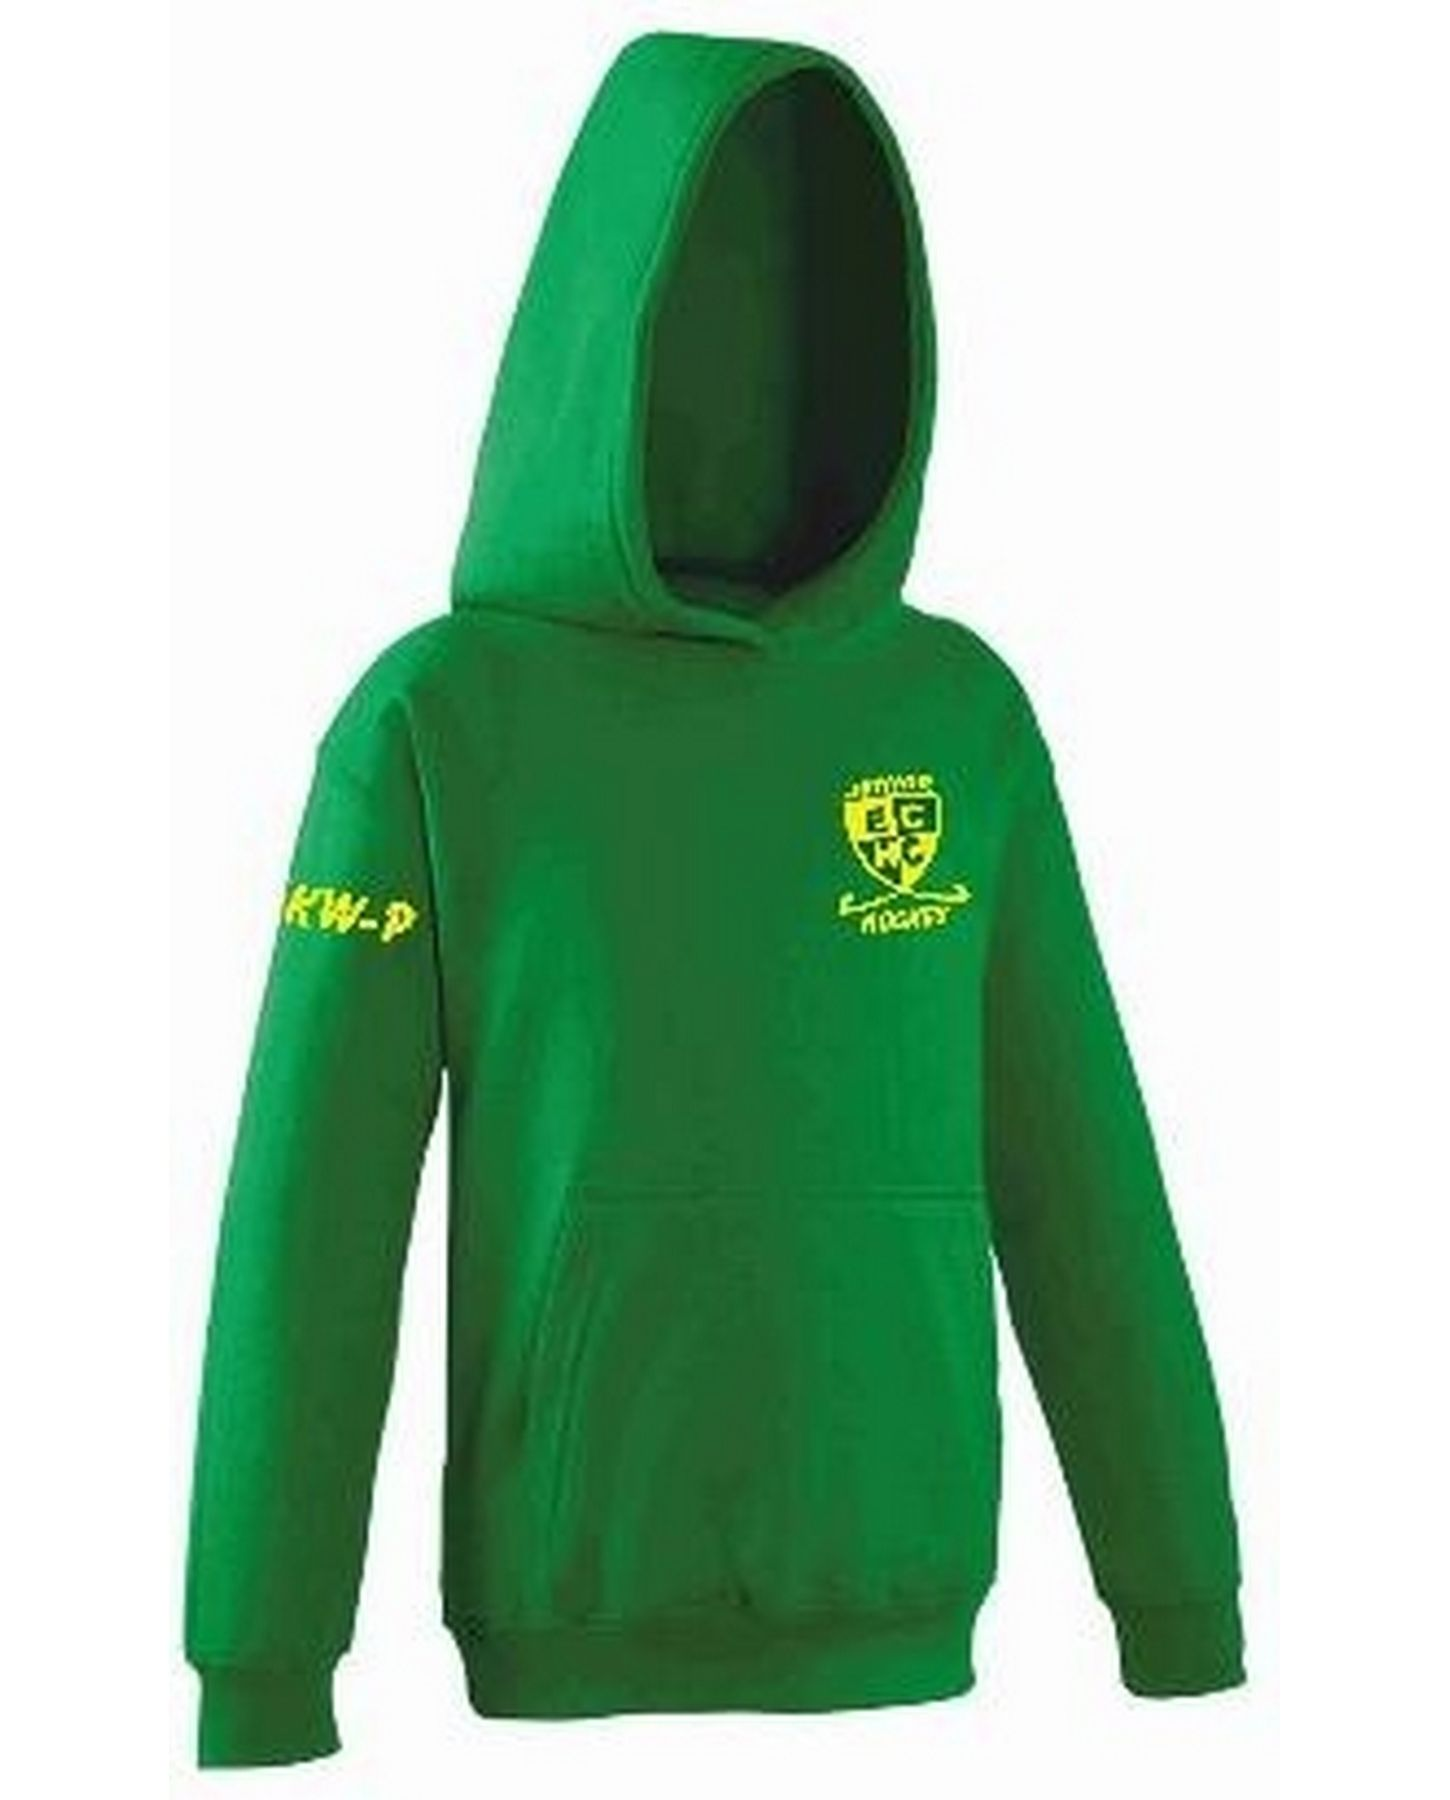 Juniors – Hoodie - Adult Sizes